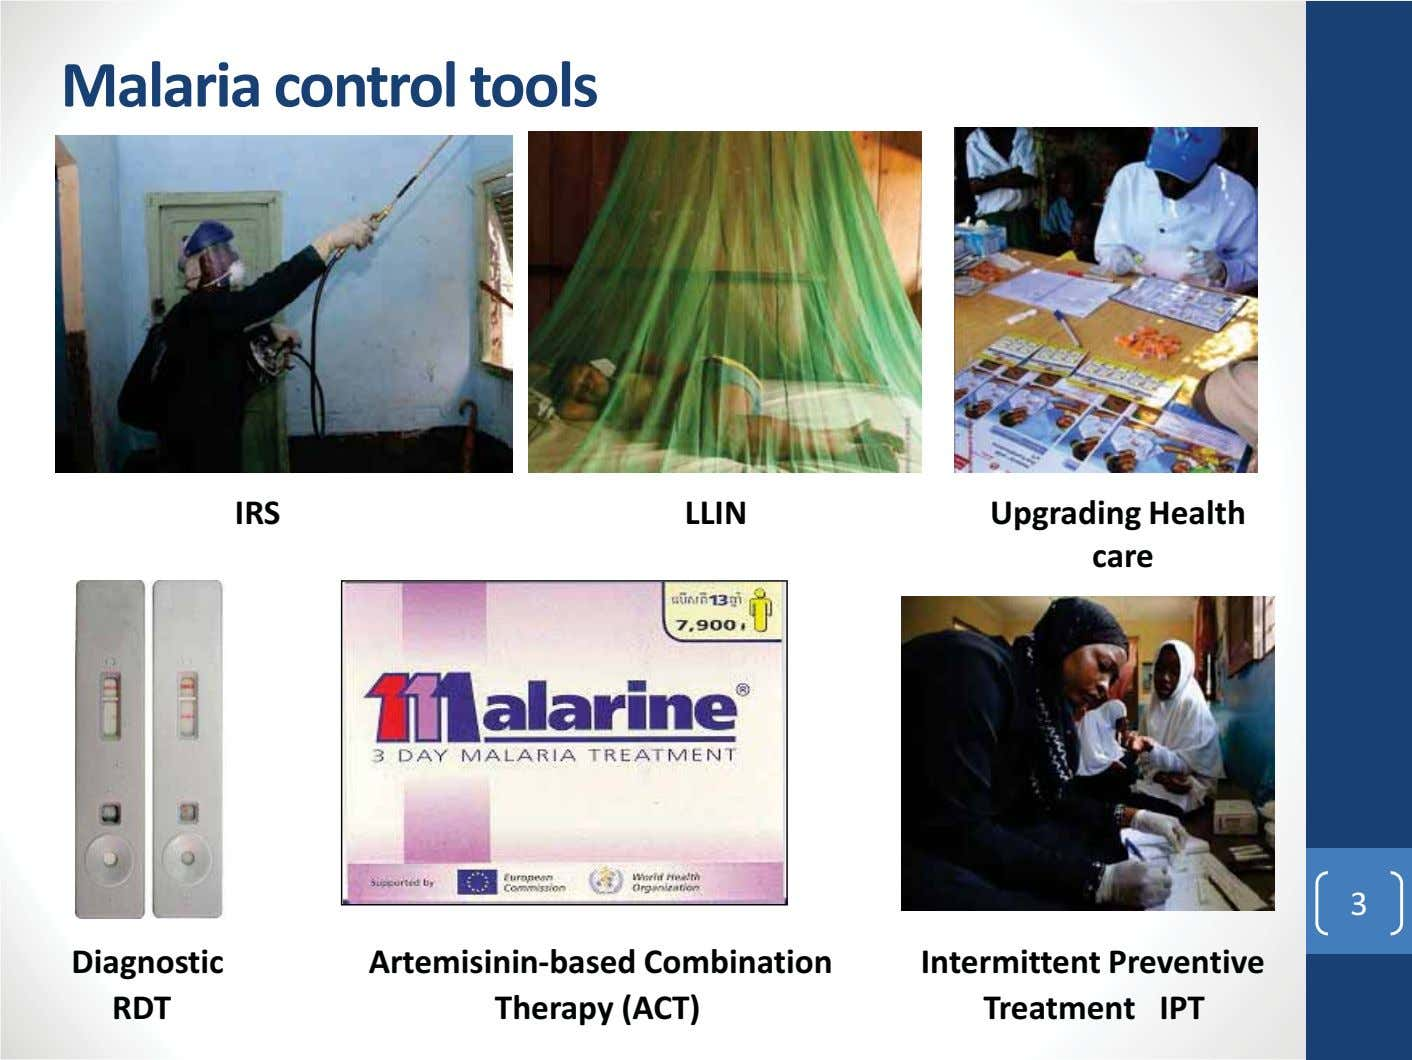 Malaria control tools IRS LLIN Upgrading Health care 3 Diagnostic Artemisinin-based Combination Therapy (ACT)